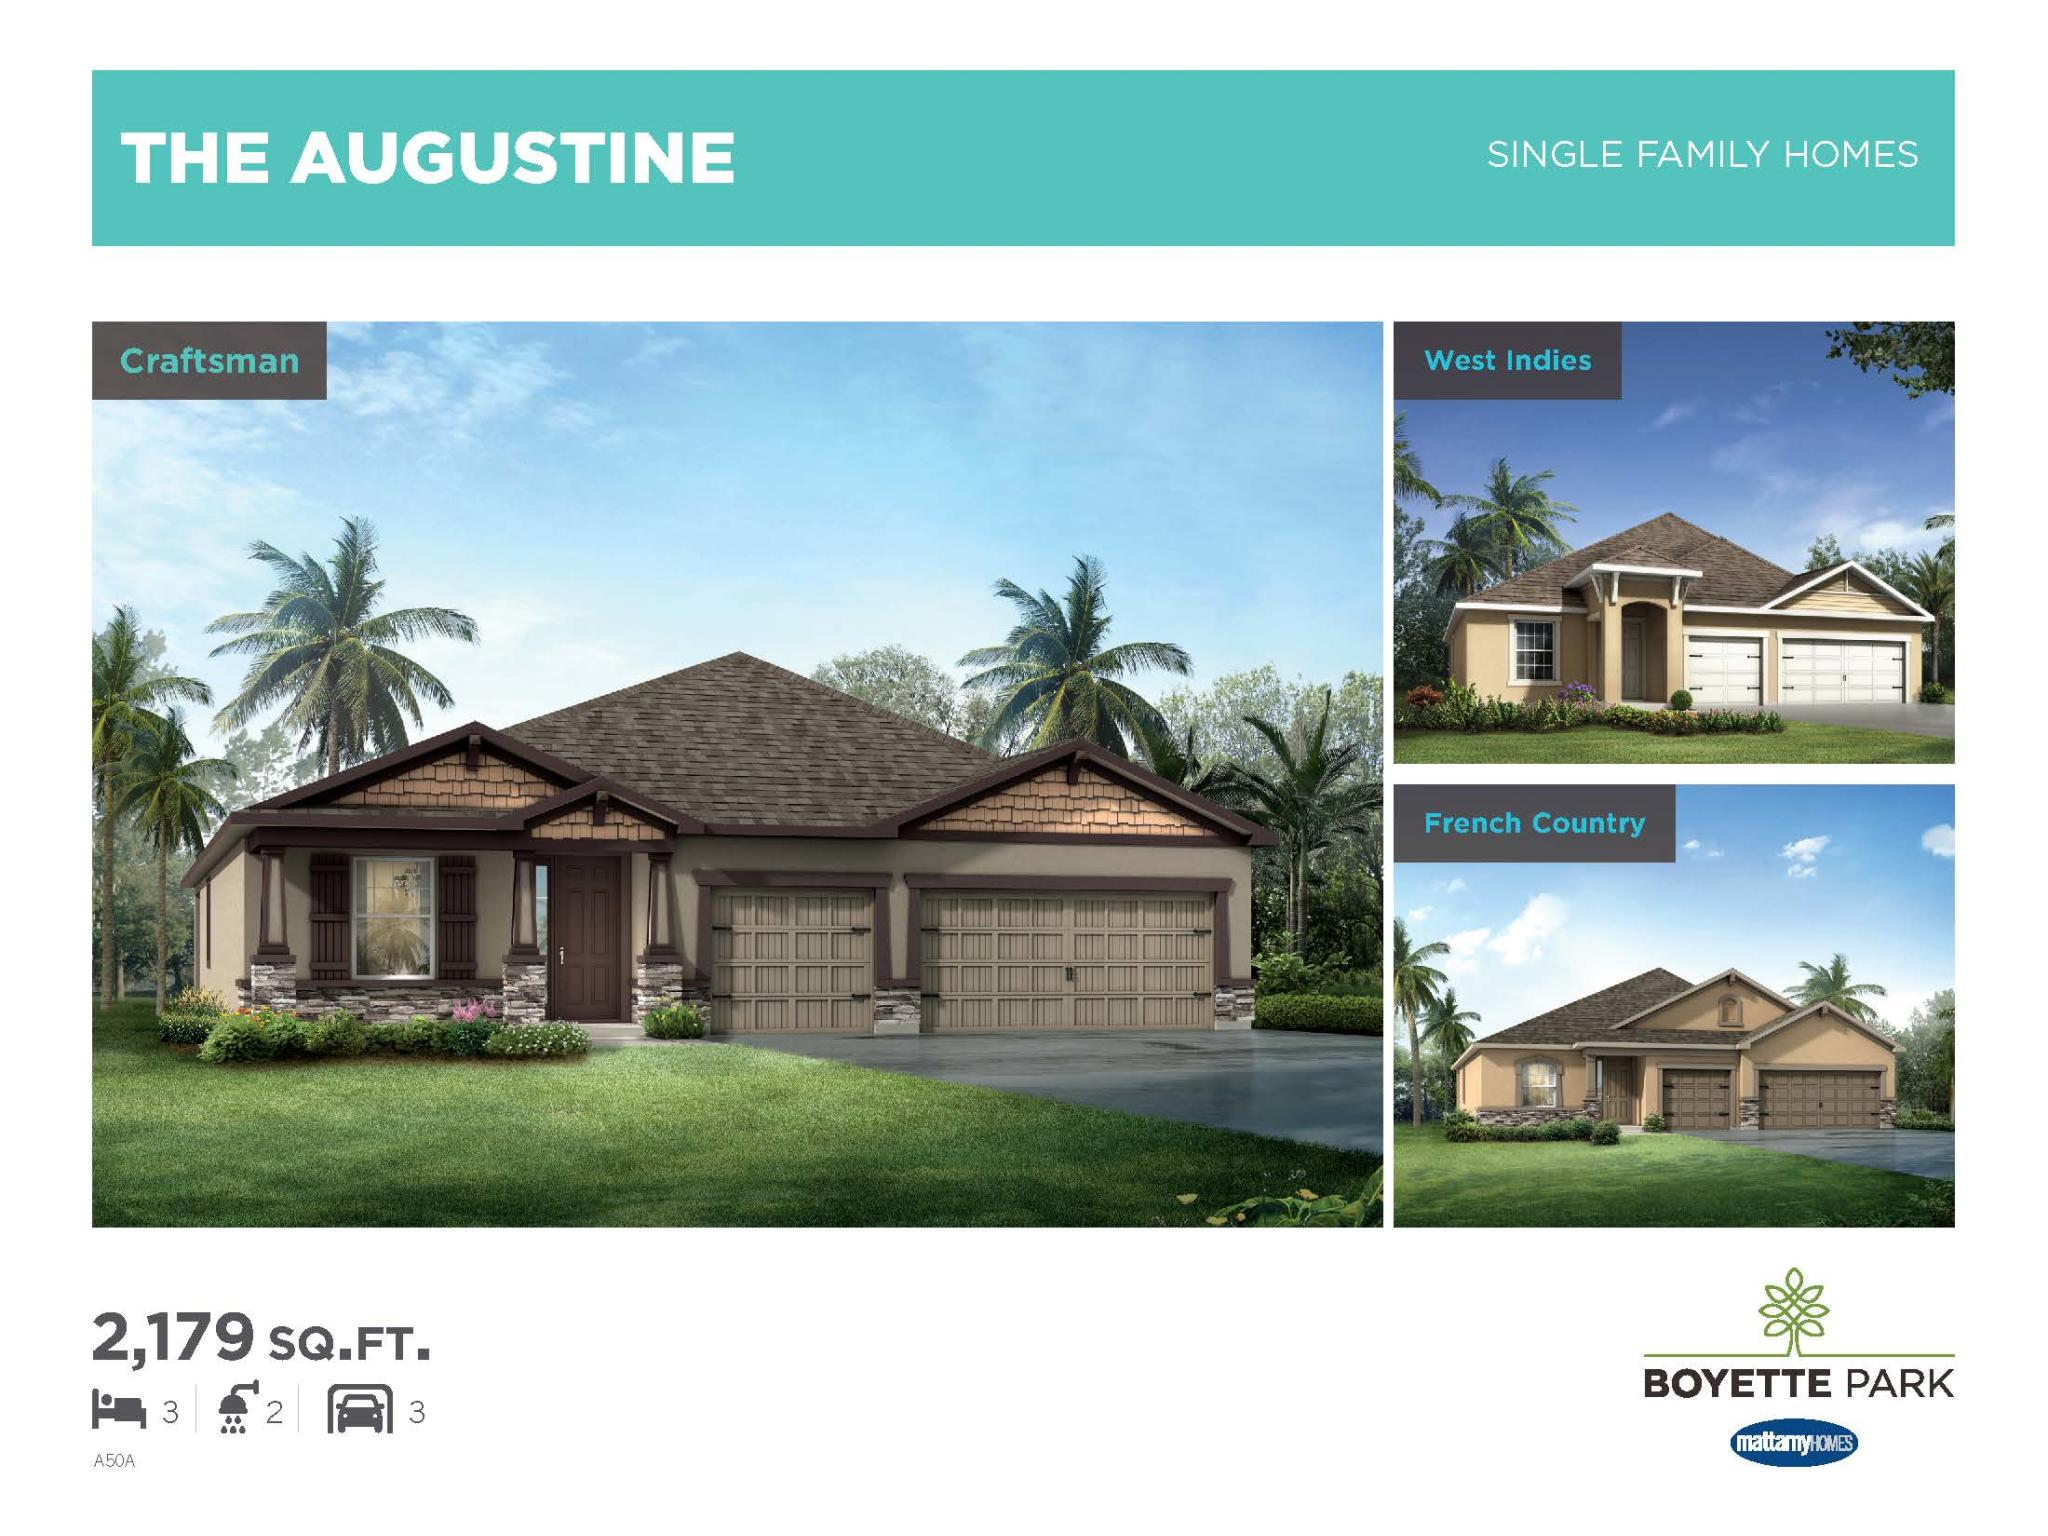 Augustine Single Family Home Plan Riverview Fl 33569 Trulia